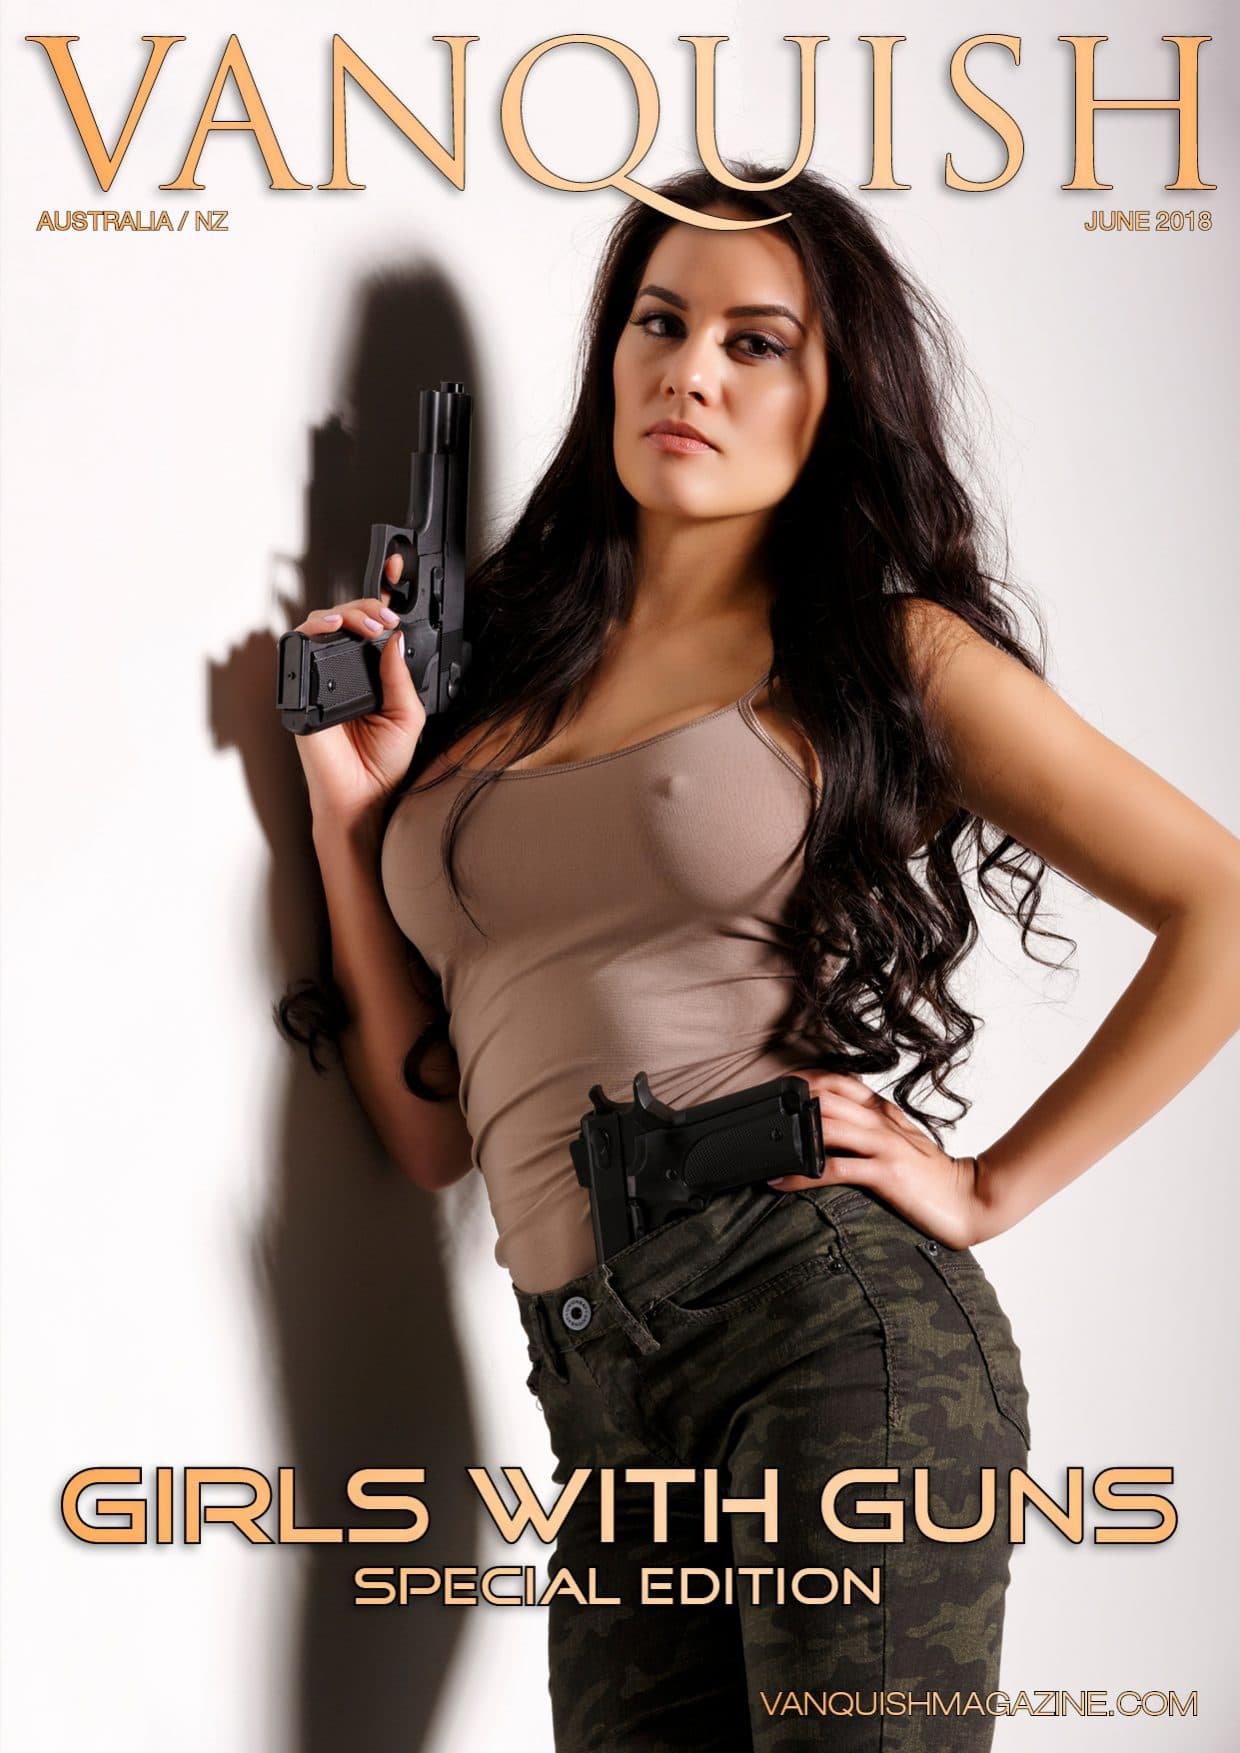 Vanquish Magazine – Girls with Guns – Sarah Maria Paul